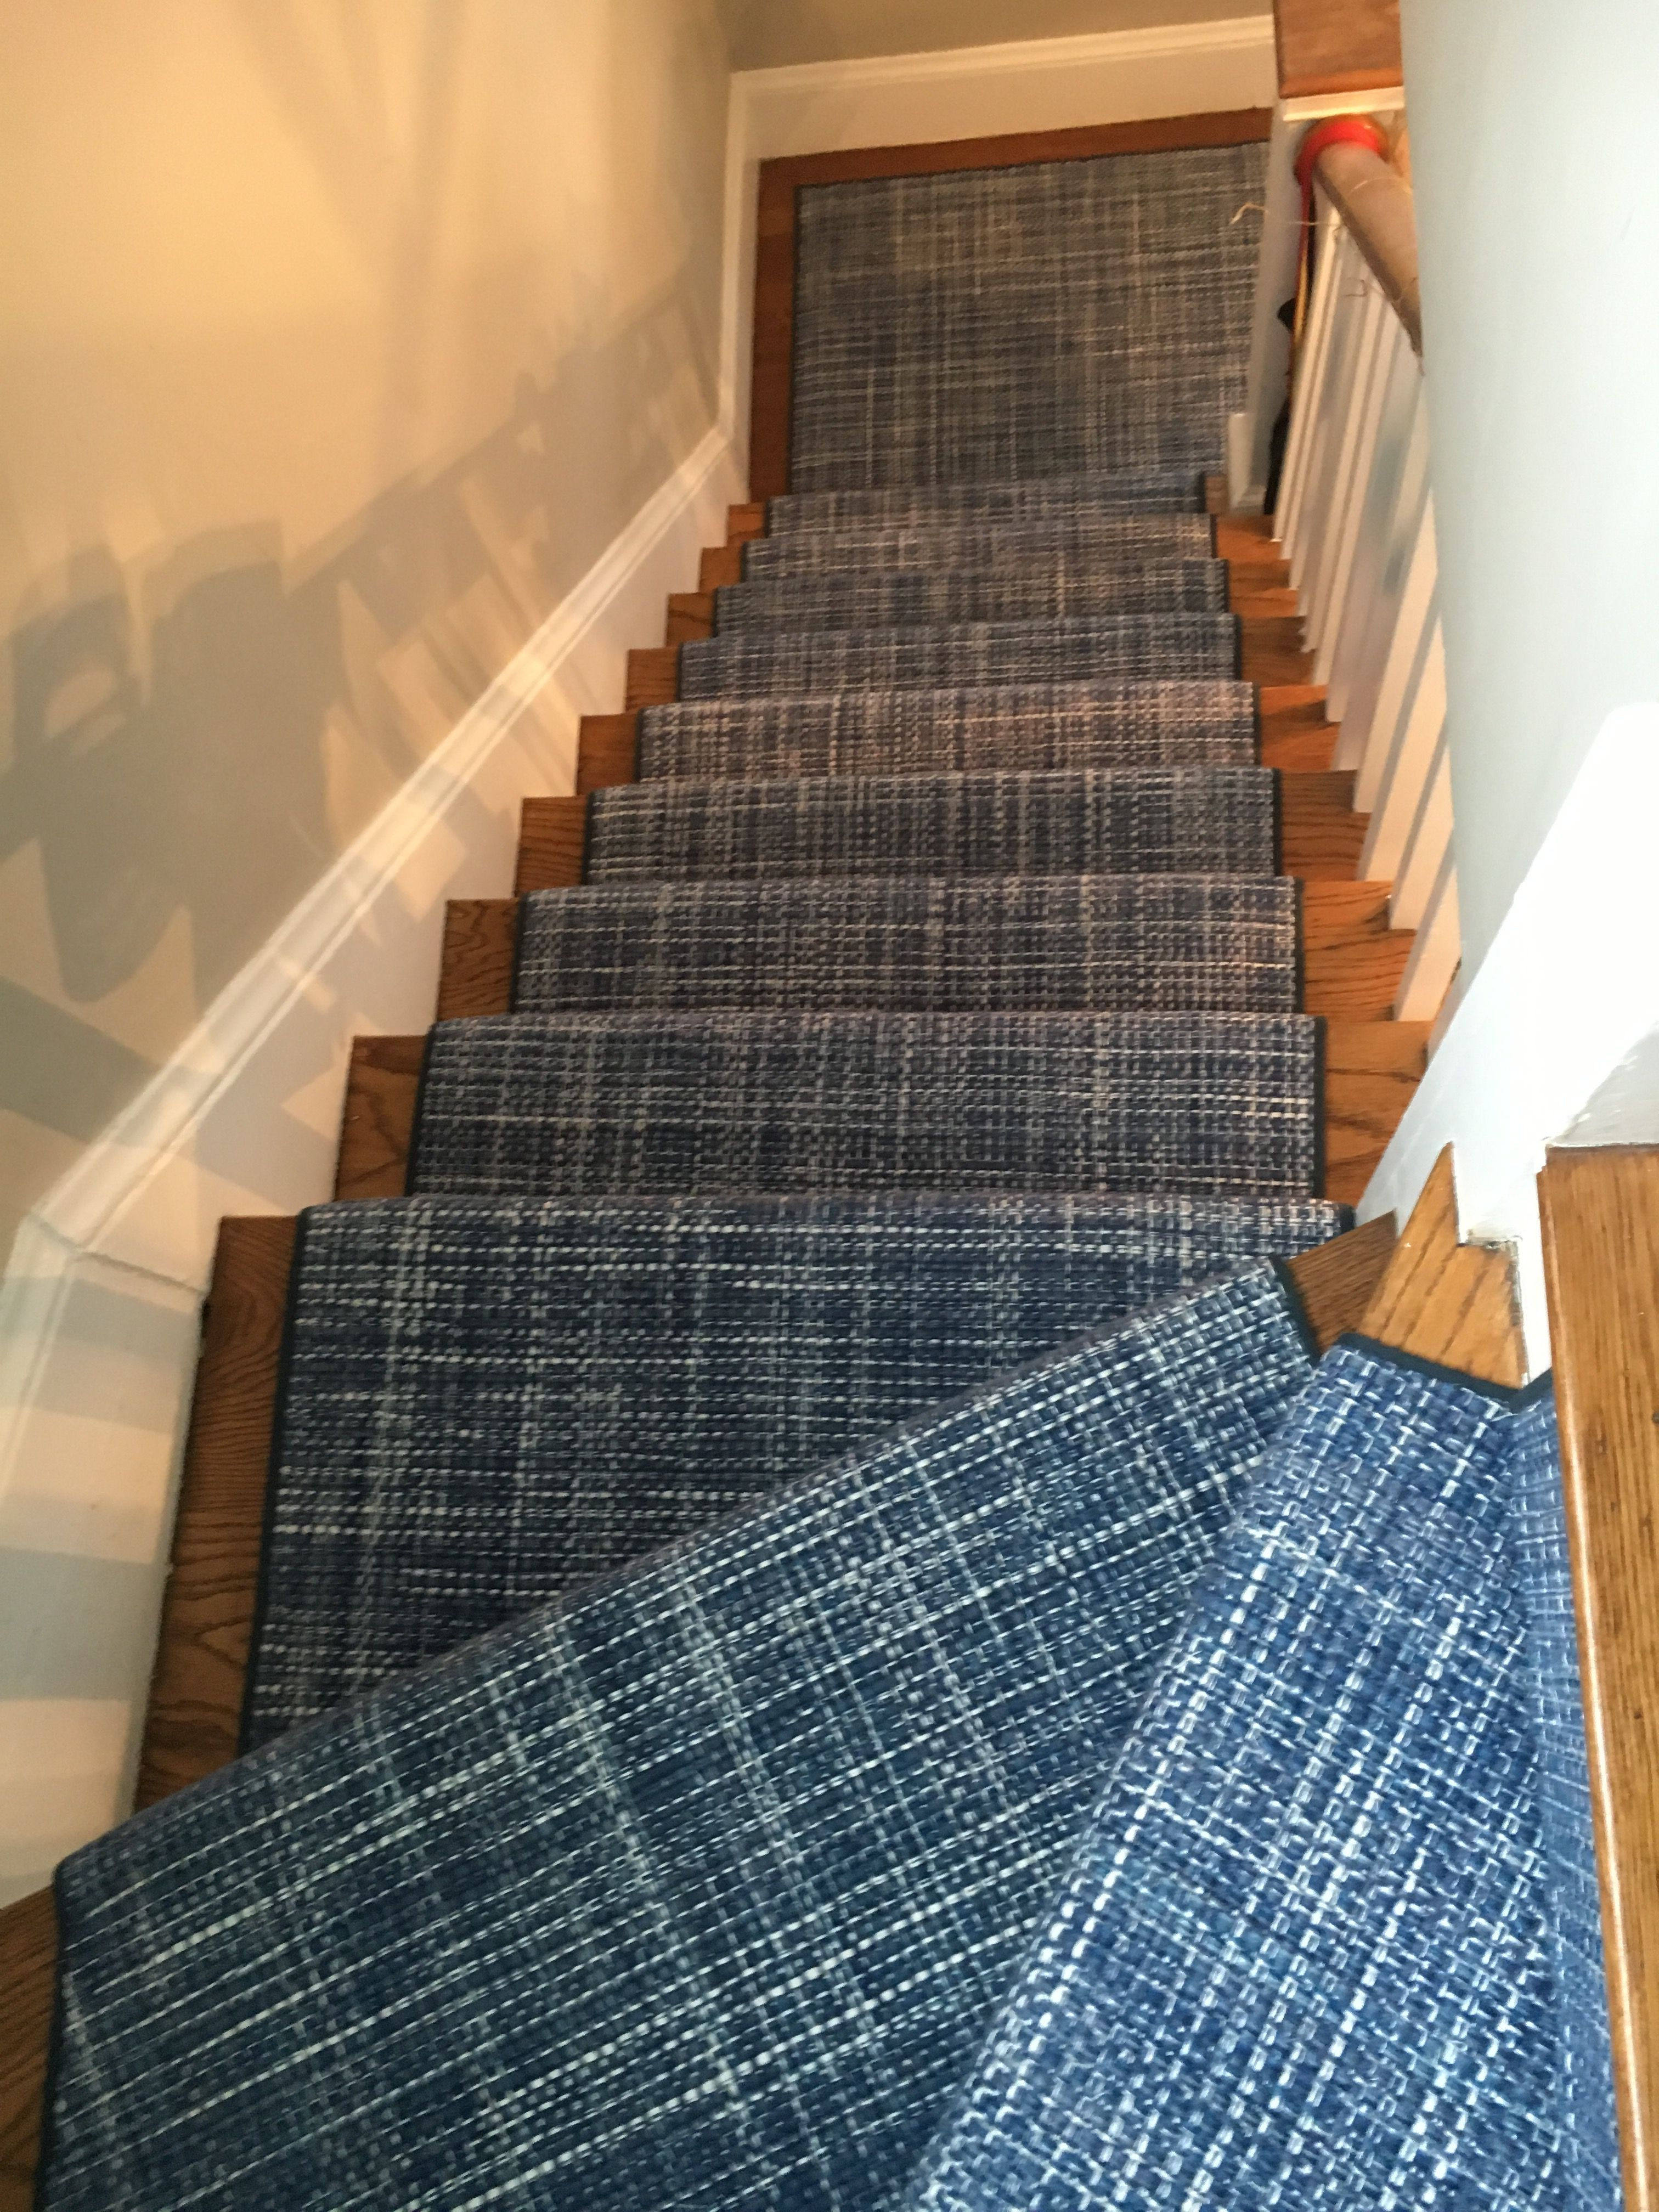 Awesome ... Of Your Space To Info@carpetworkroom.com For A Free Estimate Or Fill  Out A Custom Carpet Order Here  Https://carpetworkroom.com/request Custom Order/